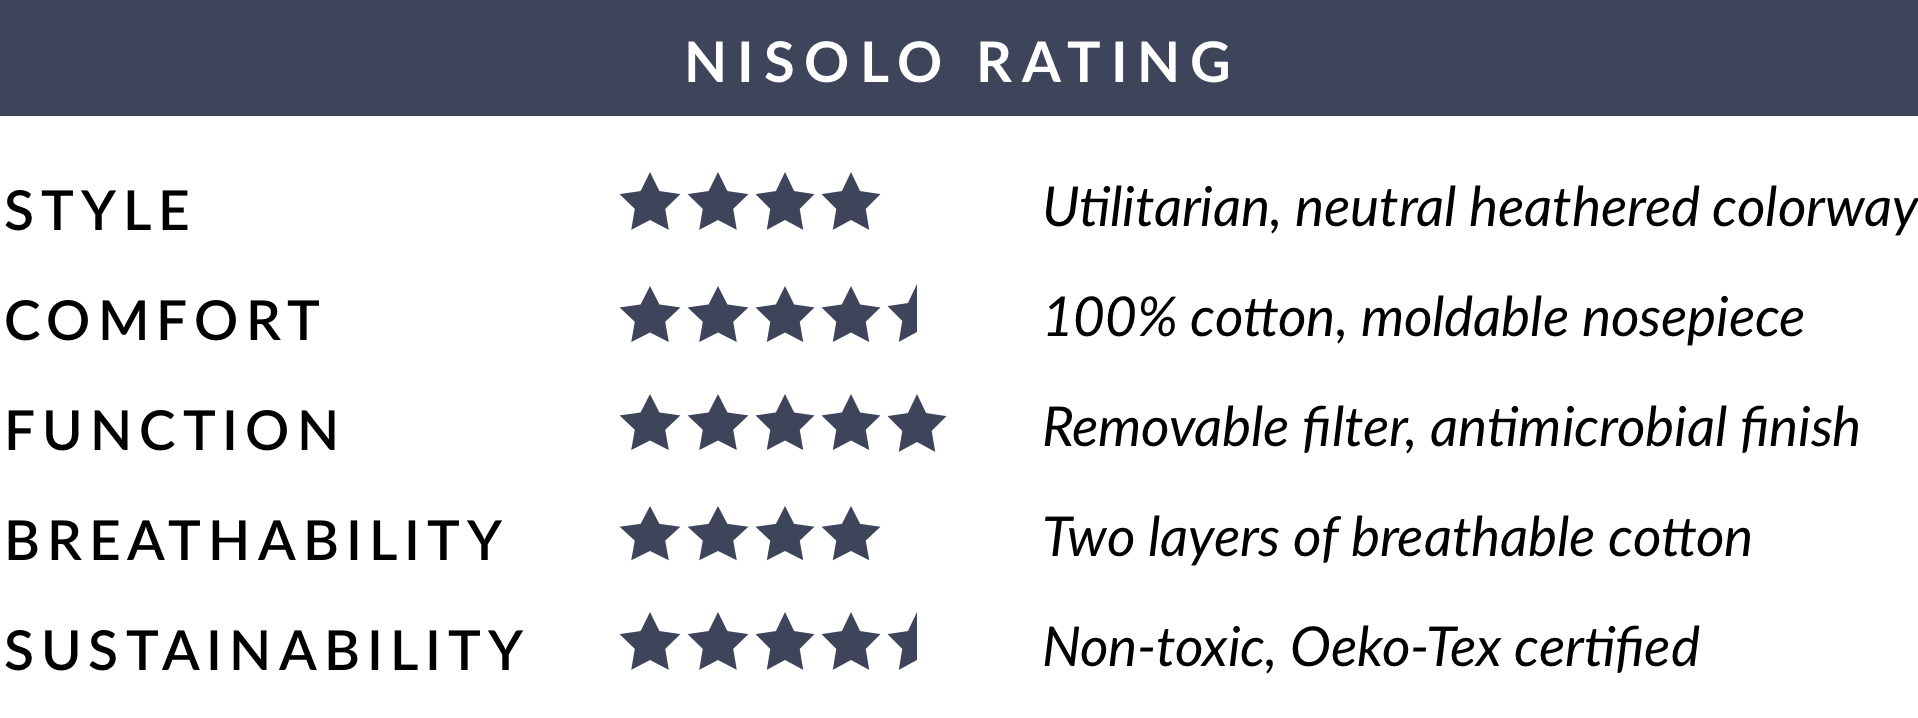 Nisolo Rating of Proper Cloth Everyday Filtered Mask - Navy Linen - Average of 4.4 out of 5 stars